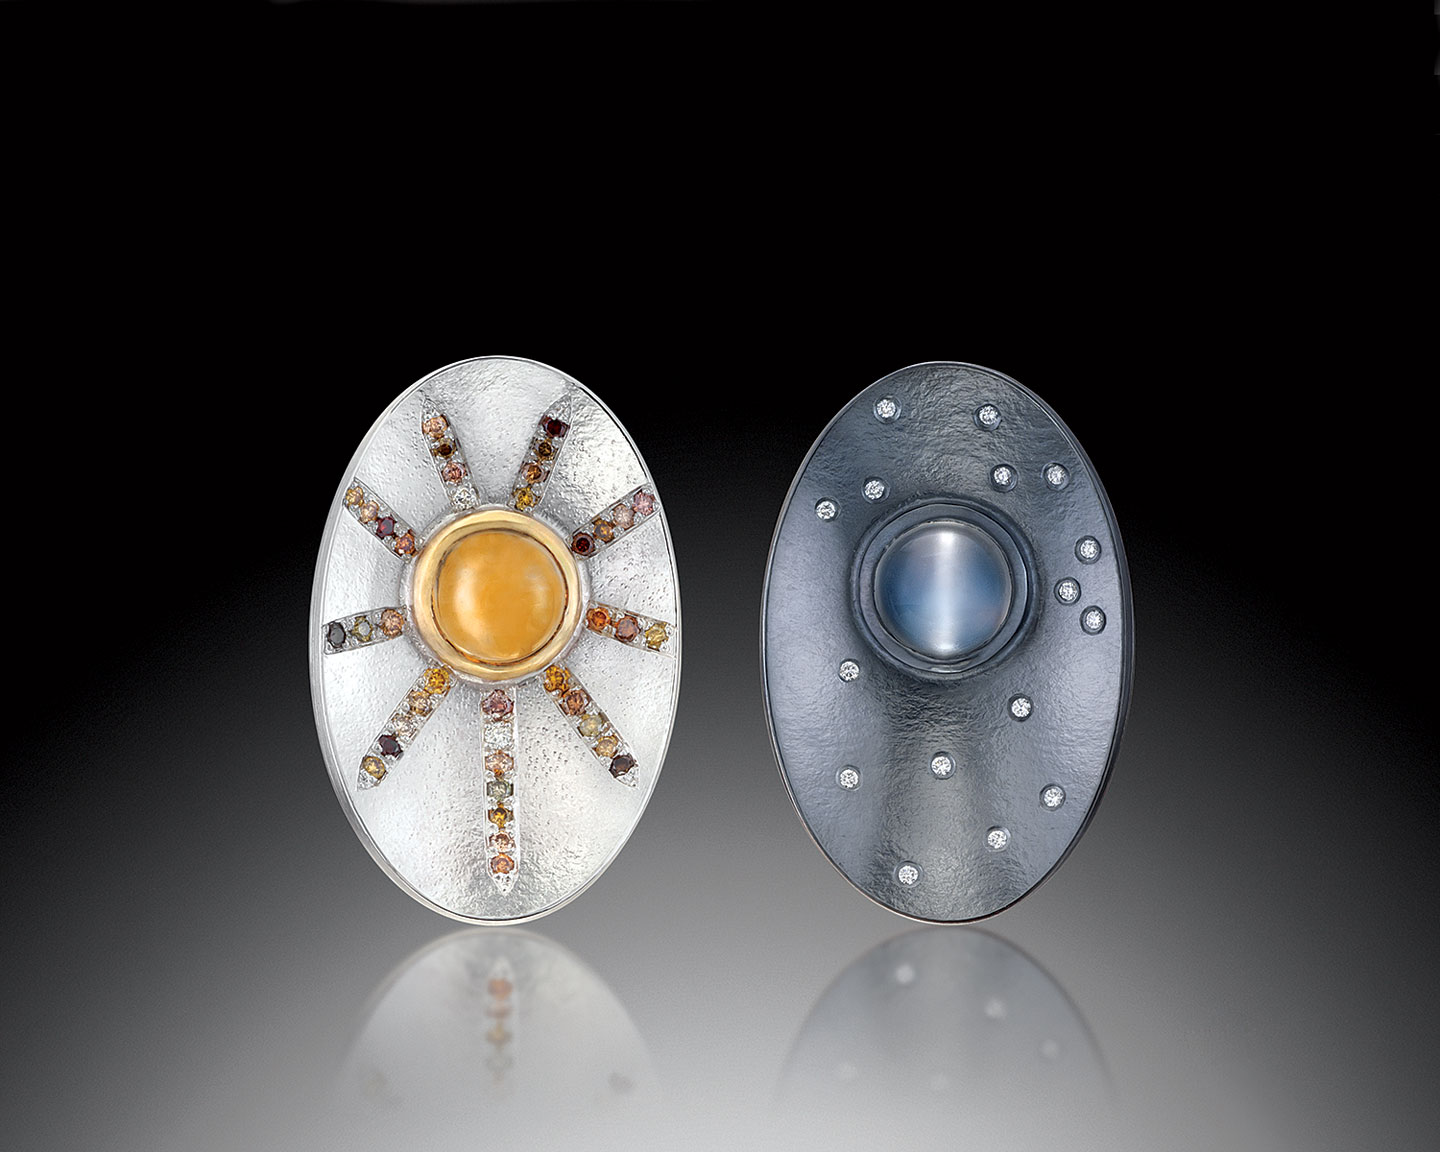 DAY/NIGHT OVAL EARRINGS of oxidized sterling, fine silver, eighteen karat yellow gold, citrine, catseye moonstone, natural colored diamonds, white diamonds, 1.9 x 3.2 x 0.5 centimeters, 2016.